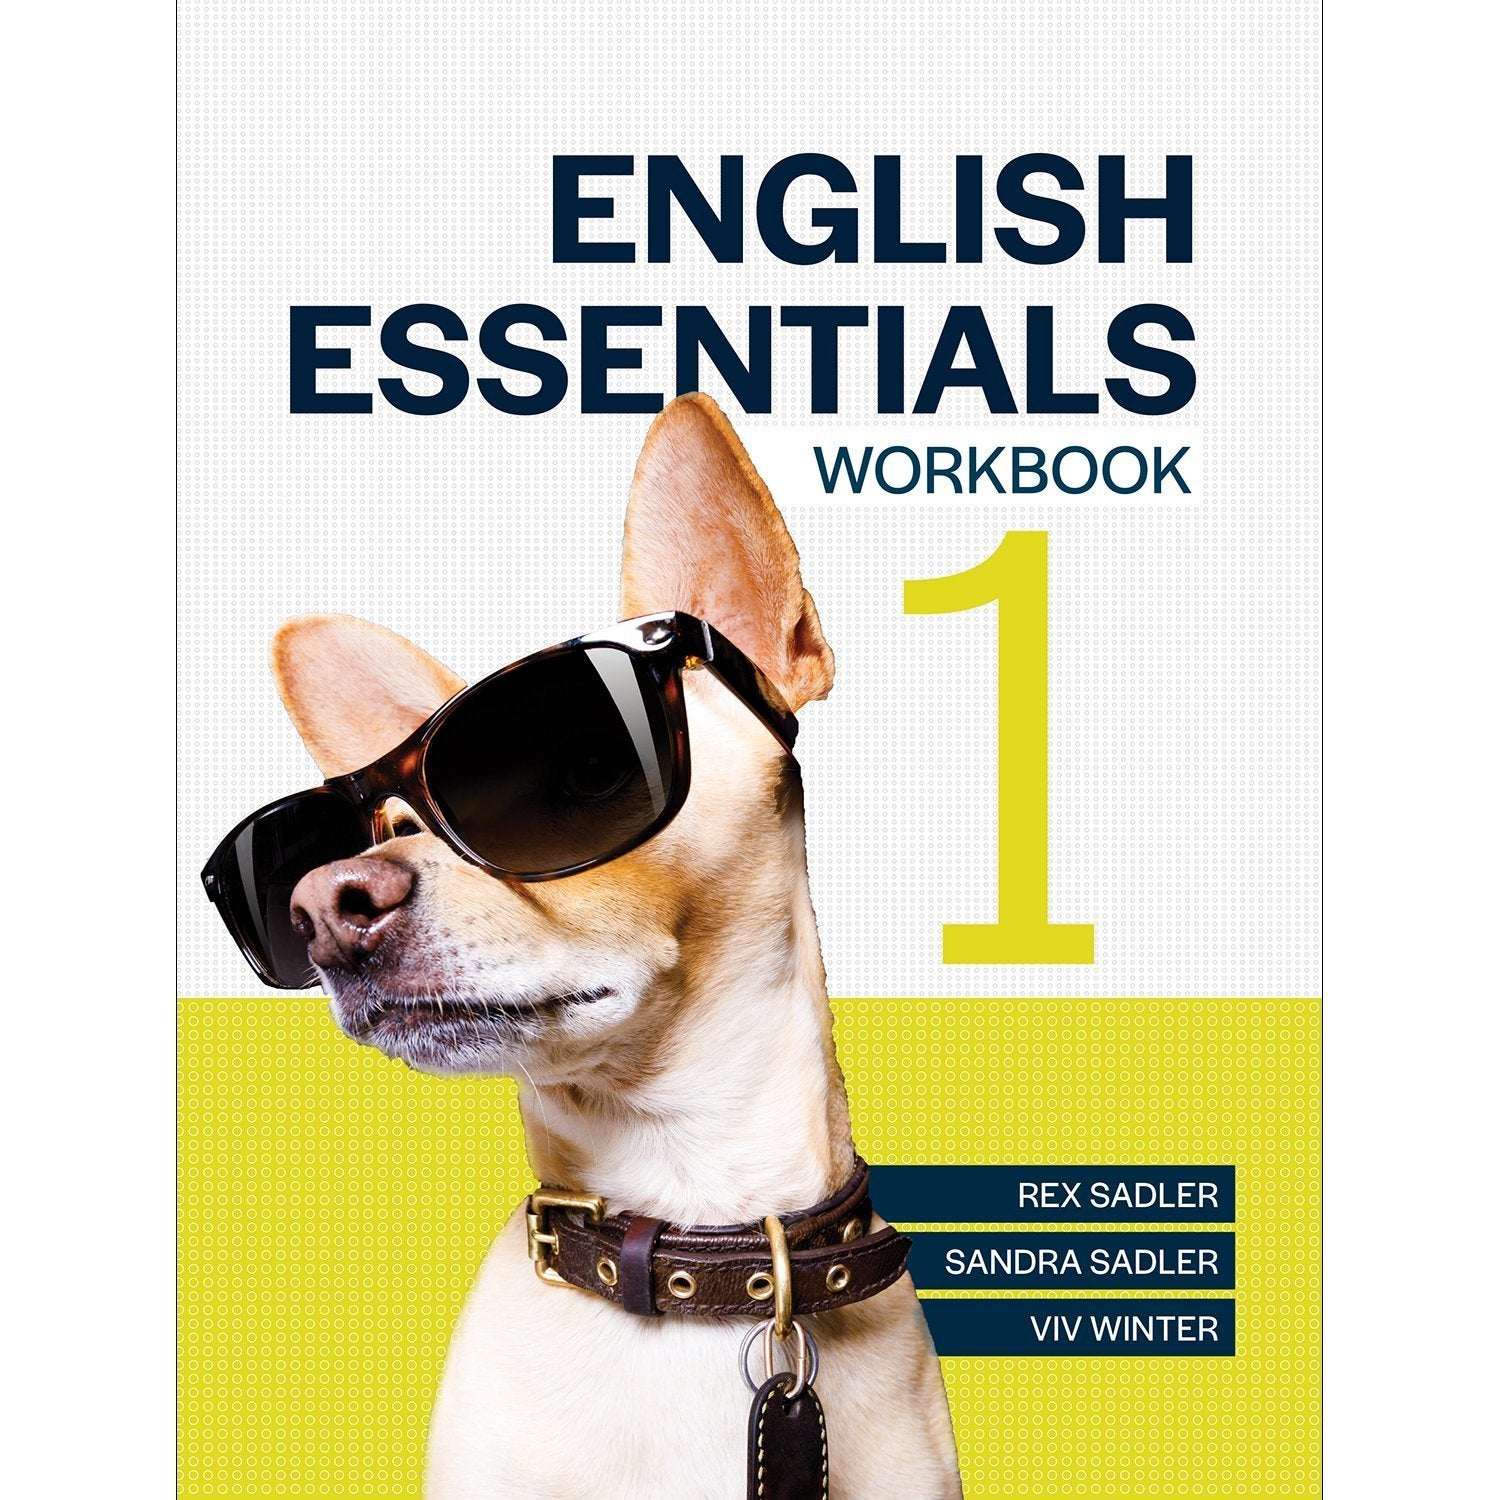 English Essentials Workbook 1